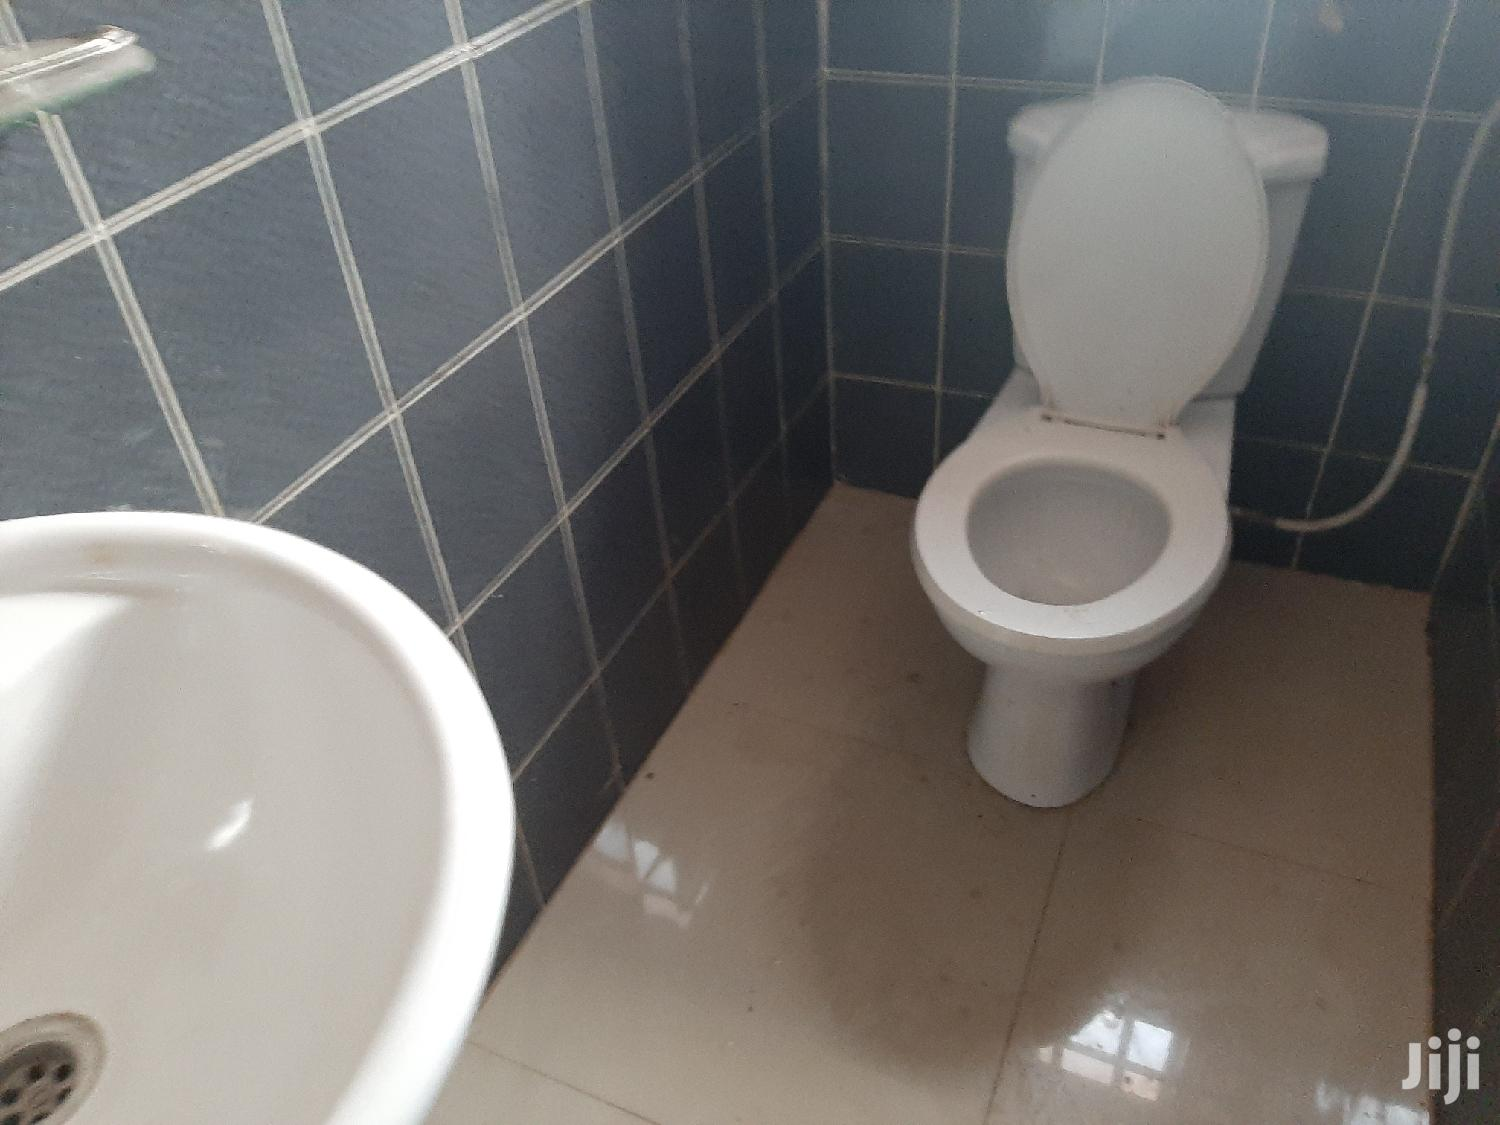 Archive: Four Bedrooms House for Rent at East Legon Around Adjiringano